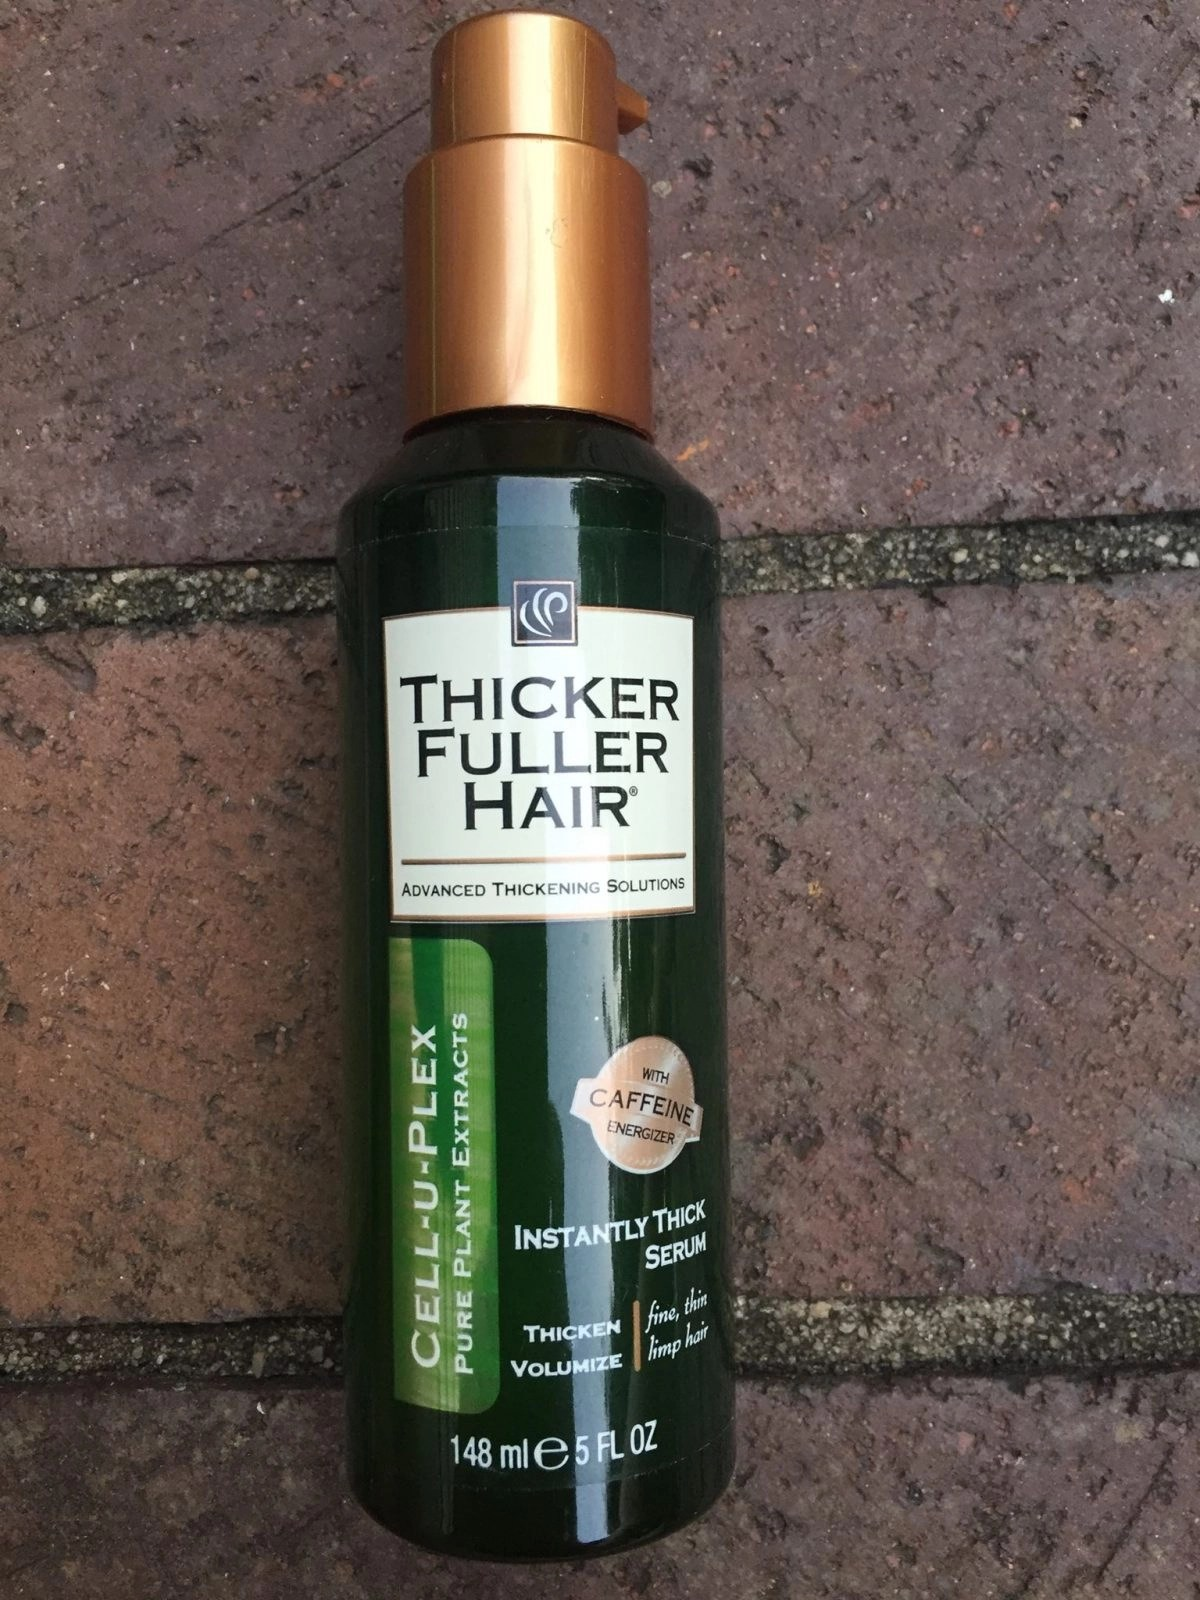 Thicker Fuller Hair Instantly Thick Serum